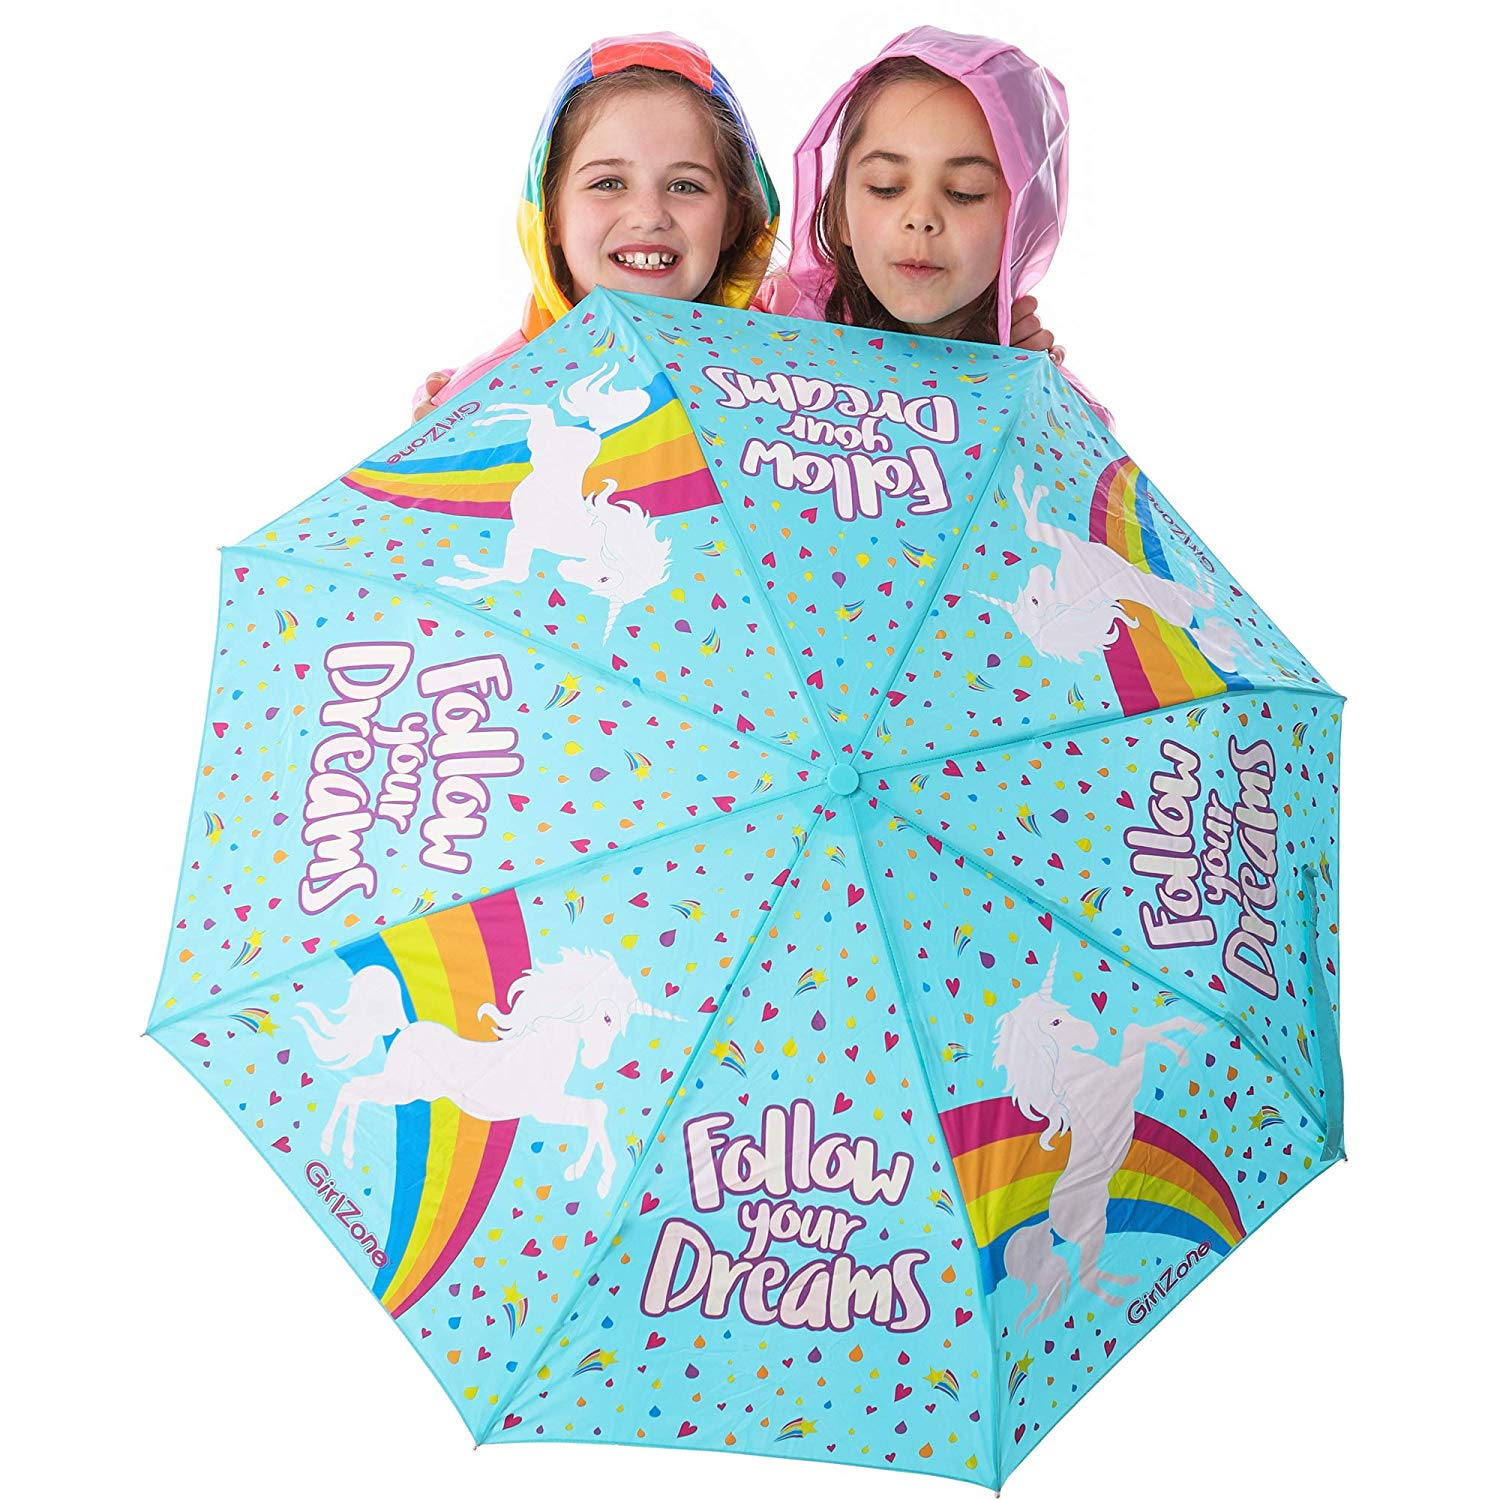 Unicorn Umbrella for Kids